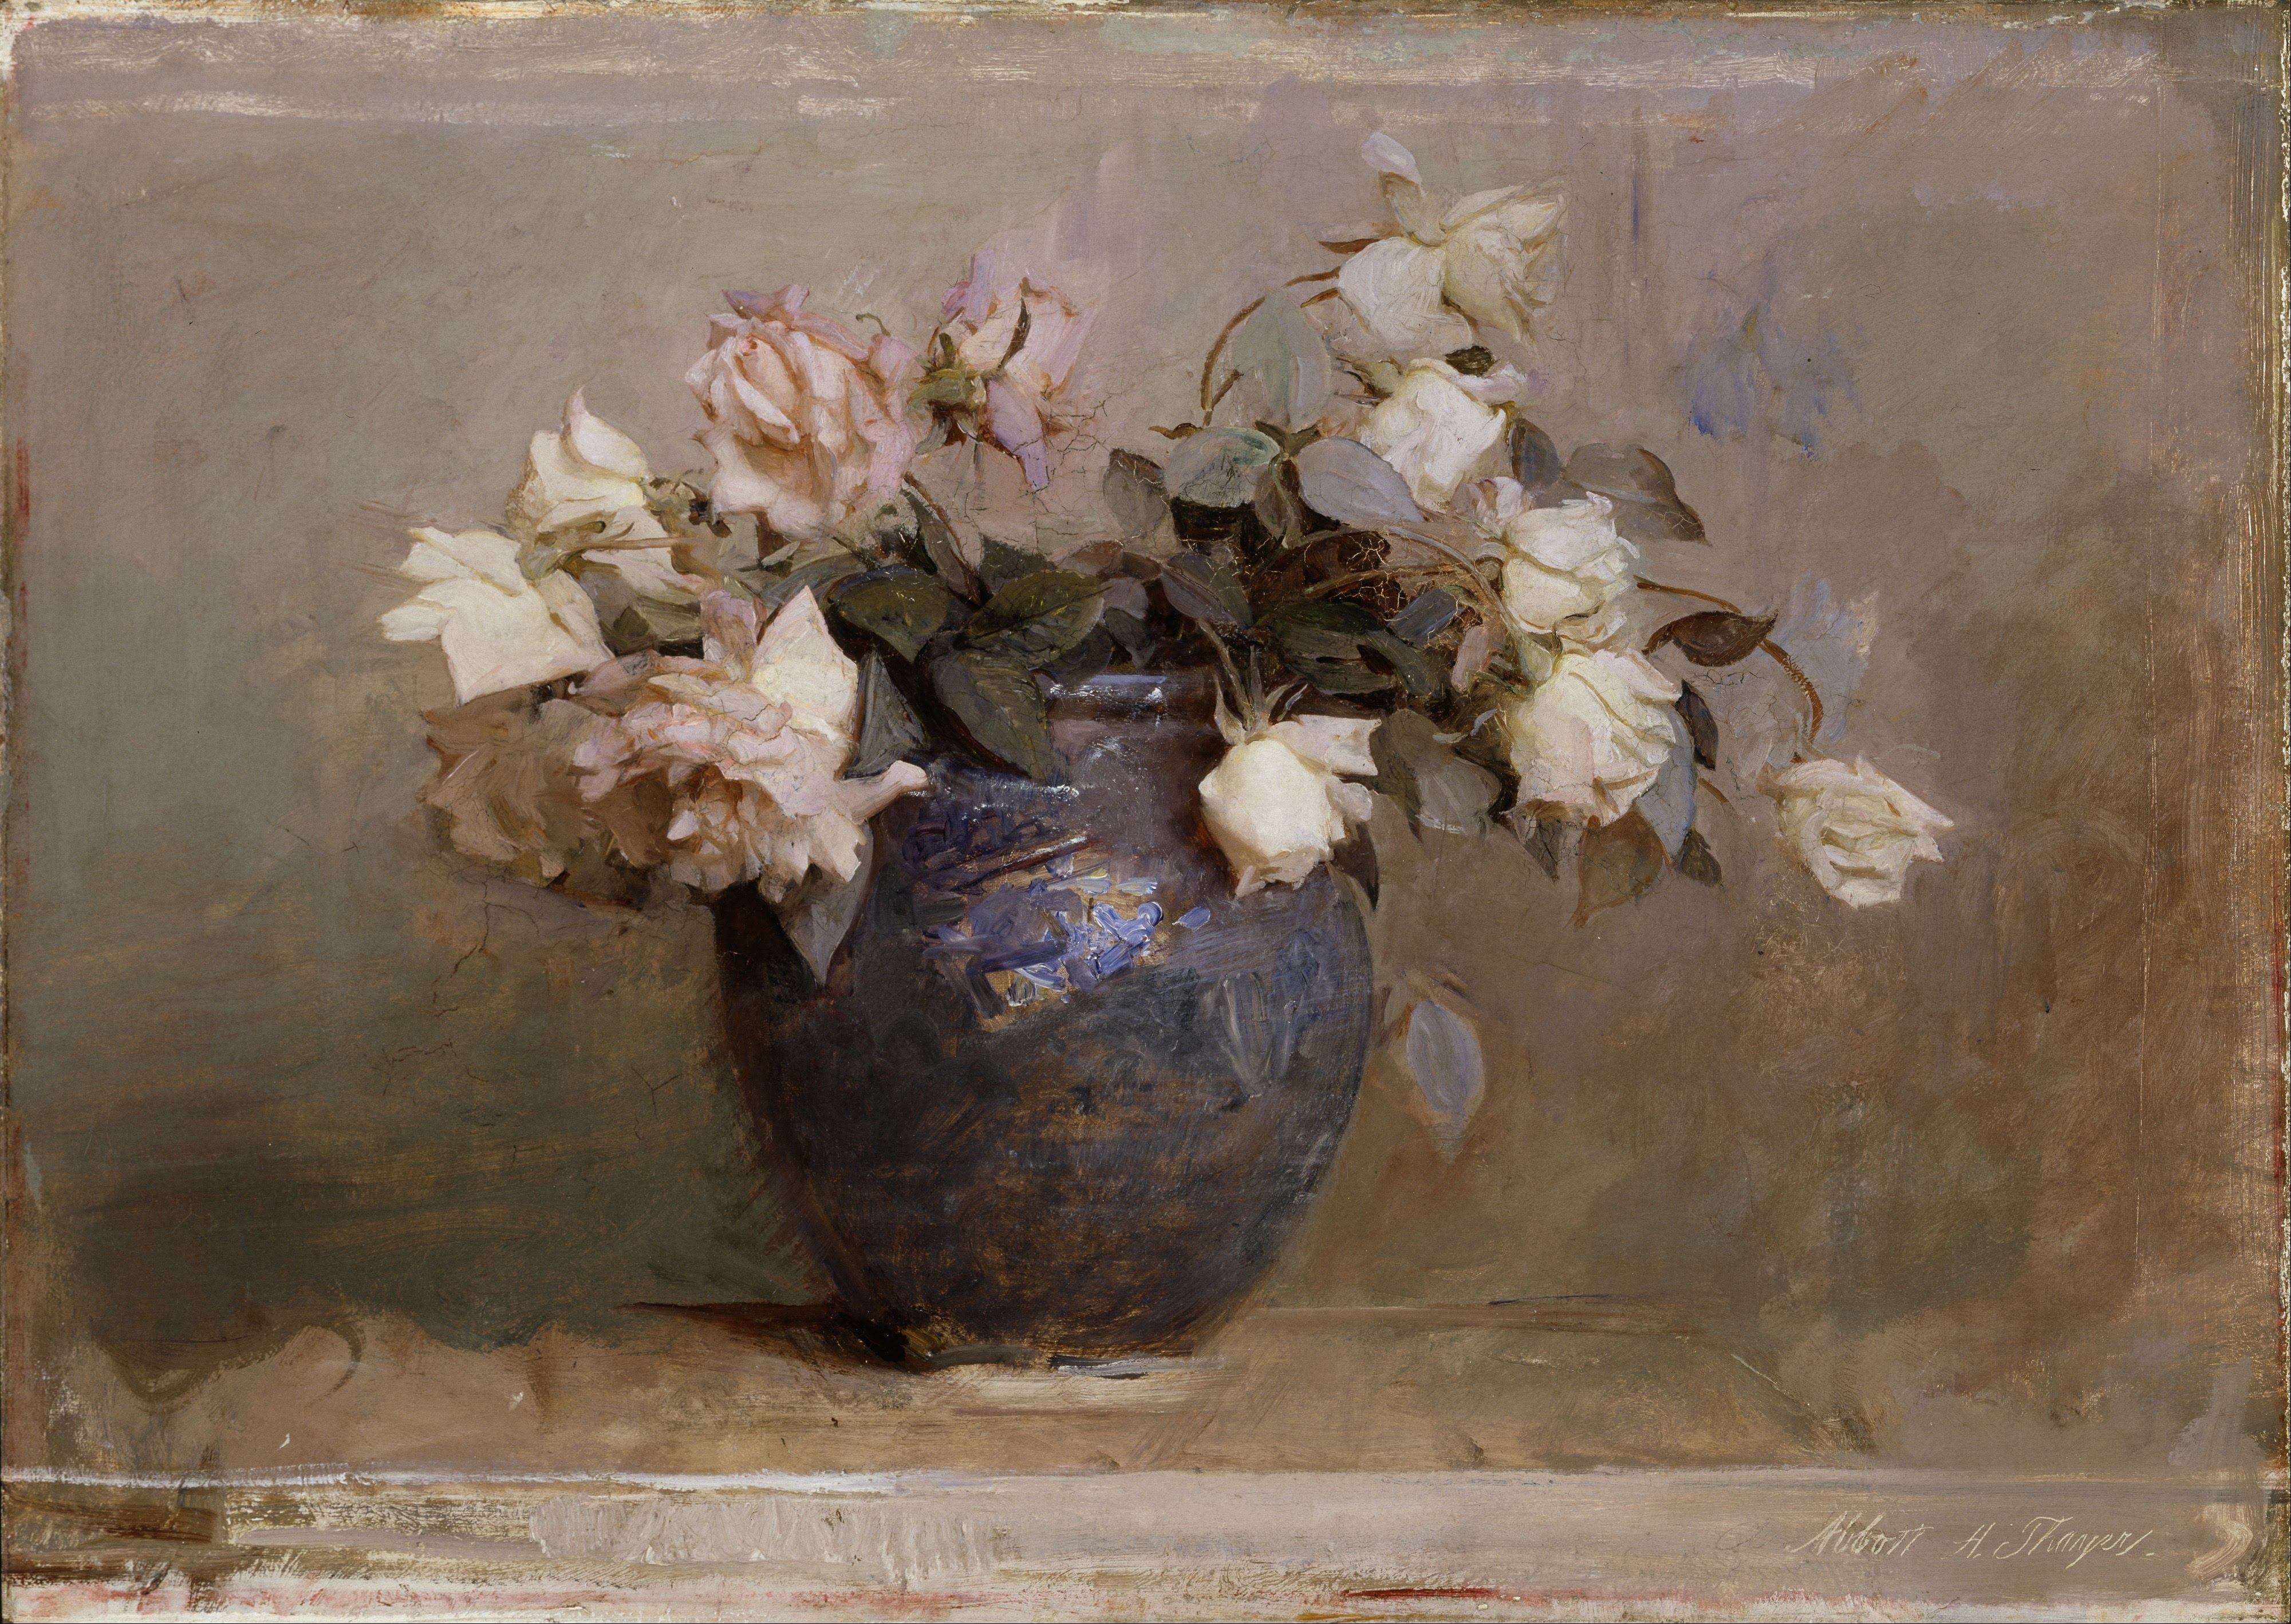 File:Abbott Handerson Thayer - Roses - Google Art Project.jpg